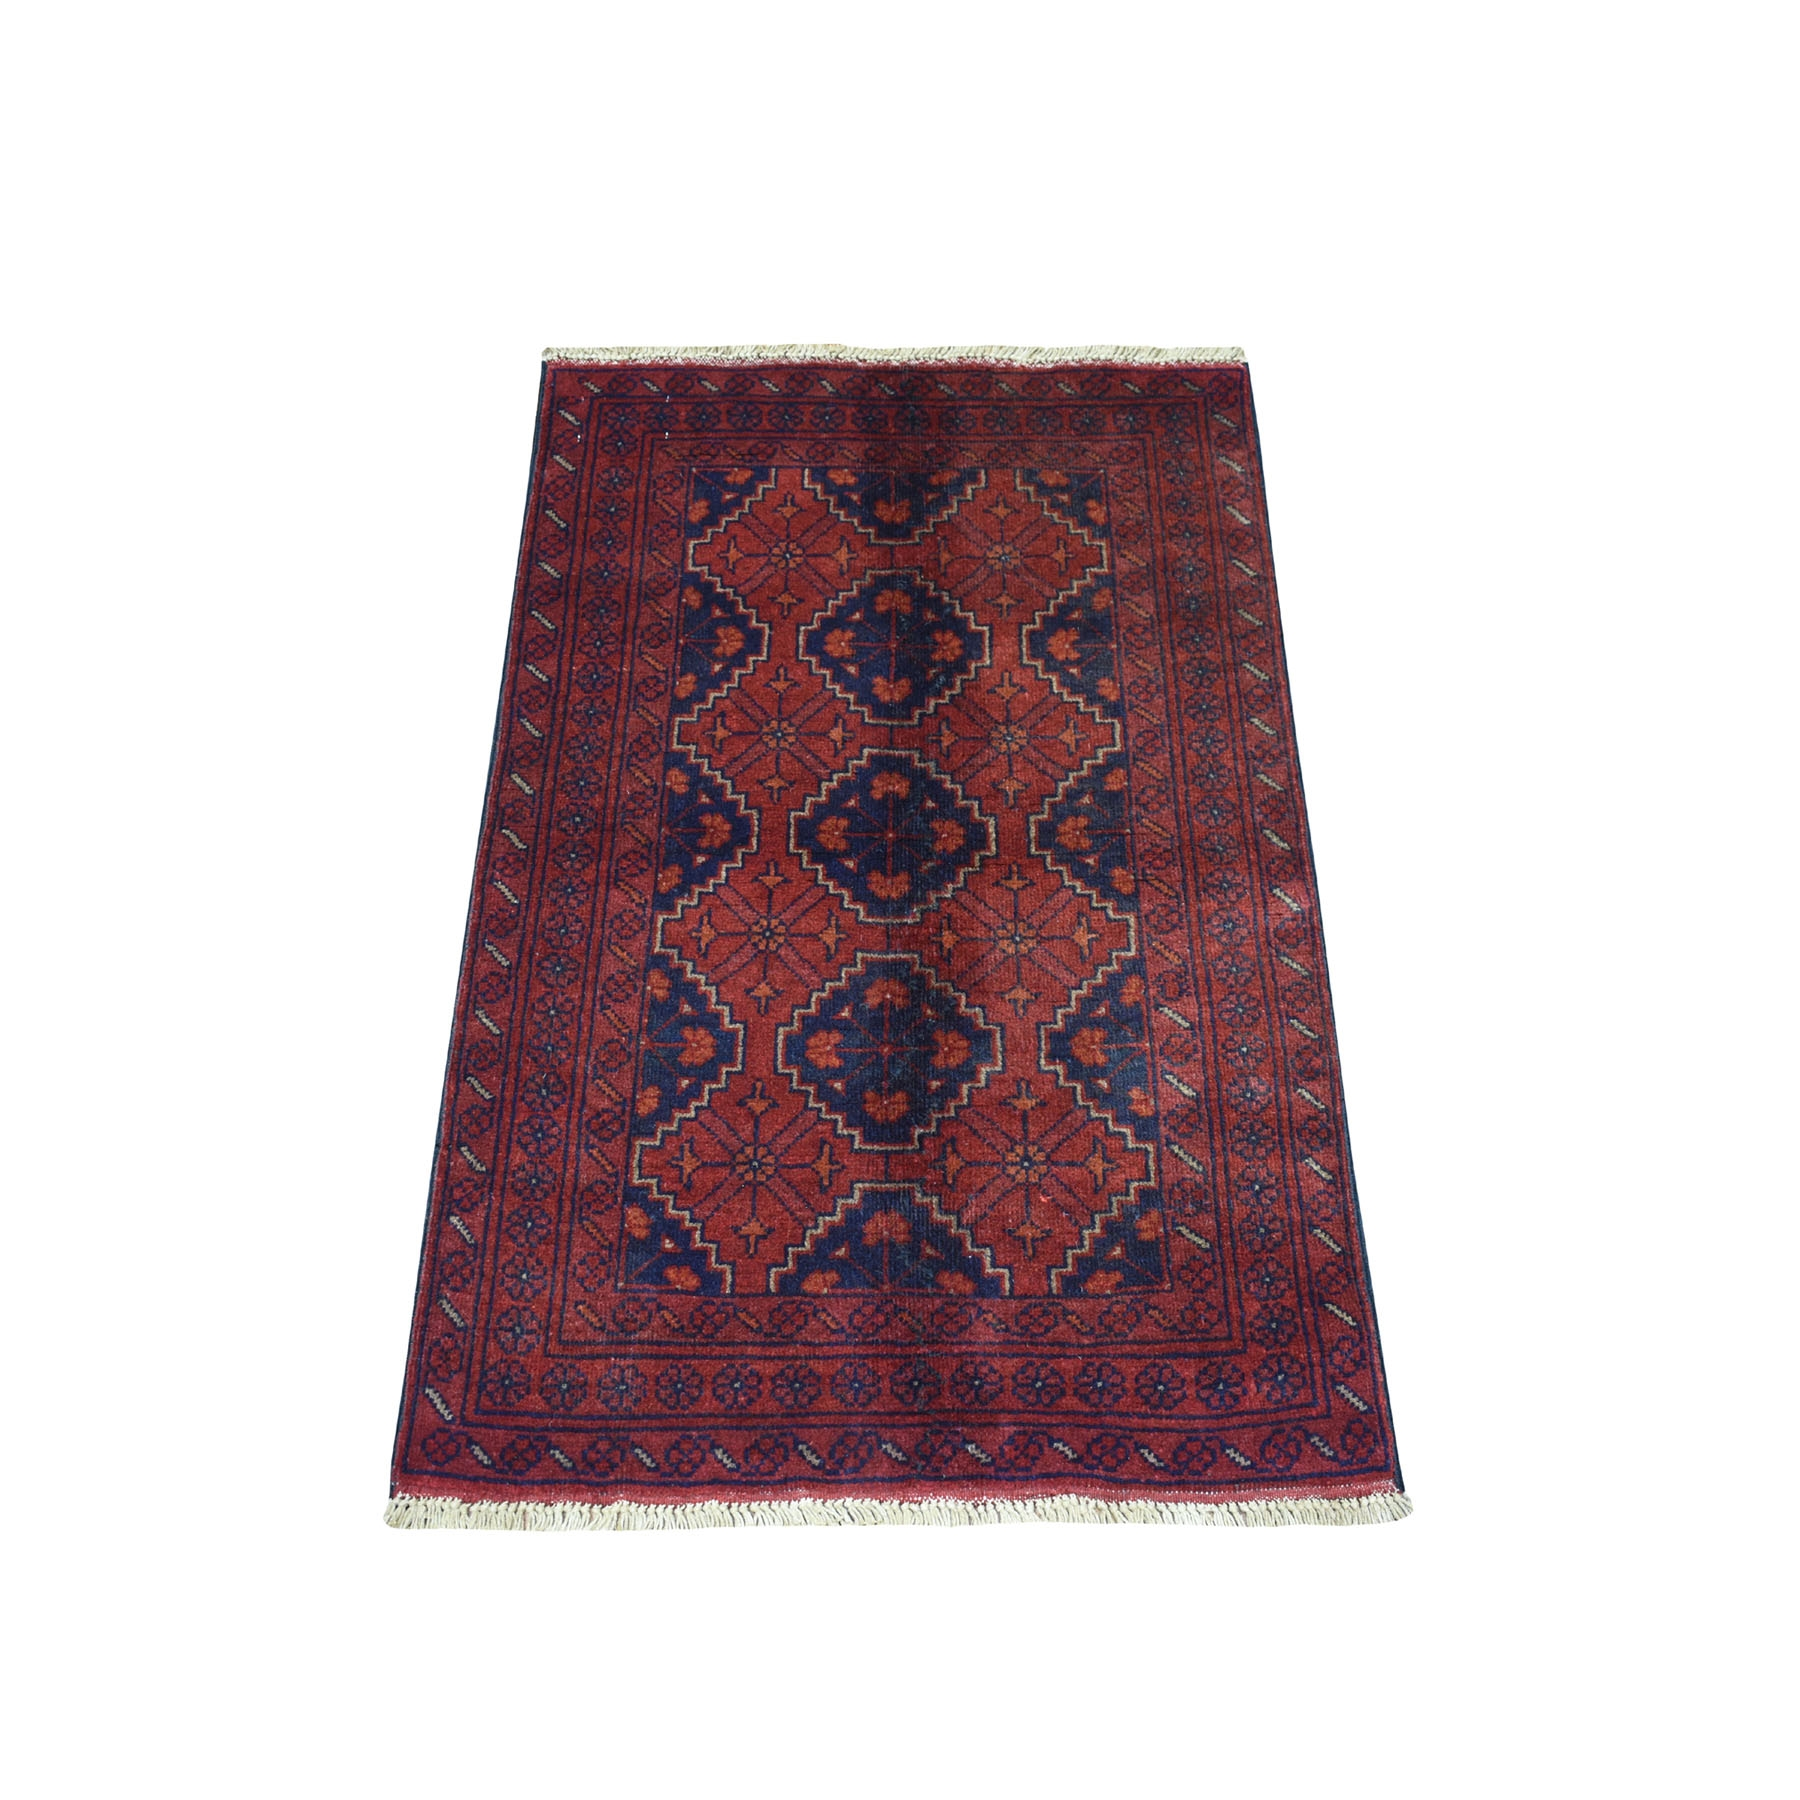 """2'4""""X3'10"""" Deep And Saturated Red Geometric Afghan Andkhoy Pure Wool Hand Knotted Oriental Rug53714"""